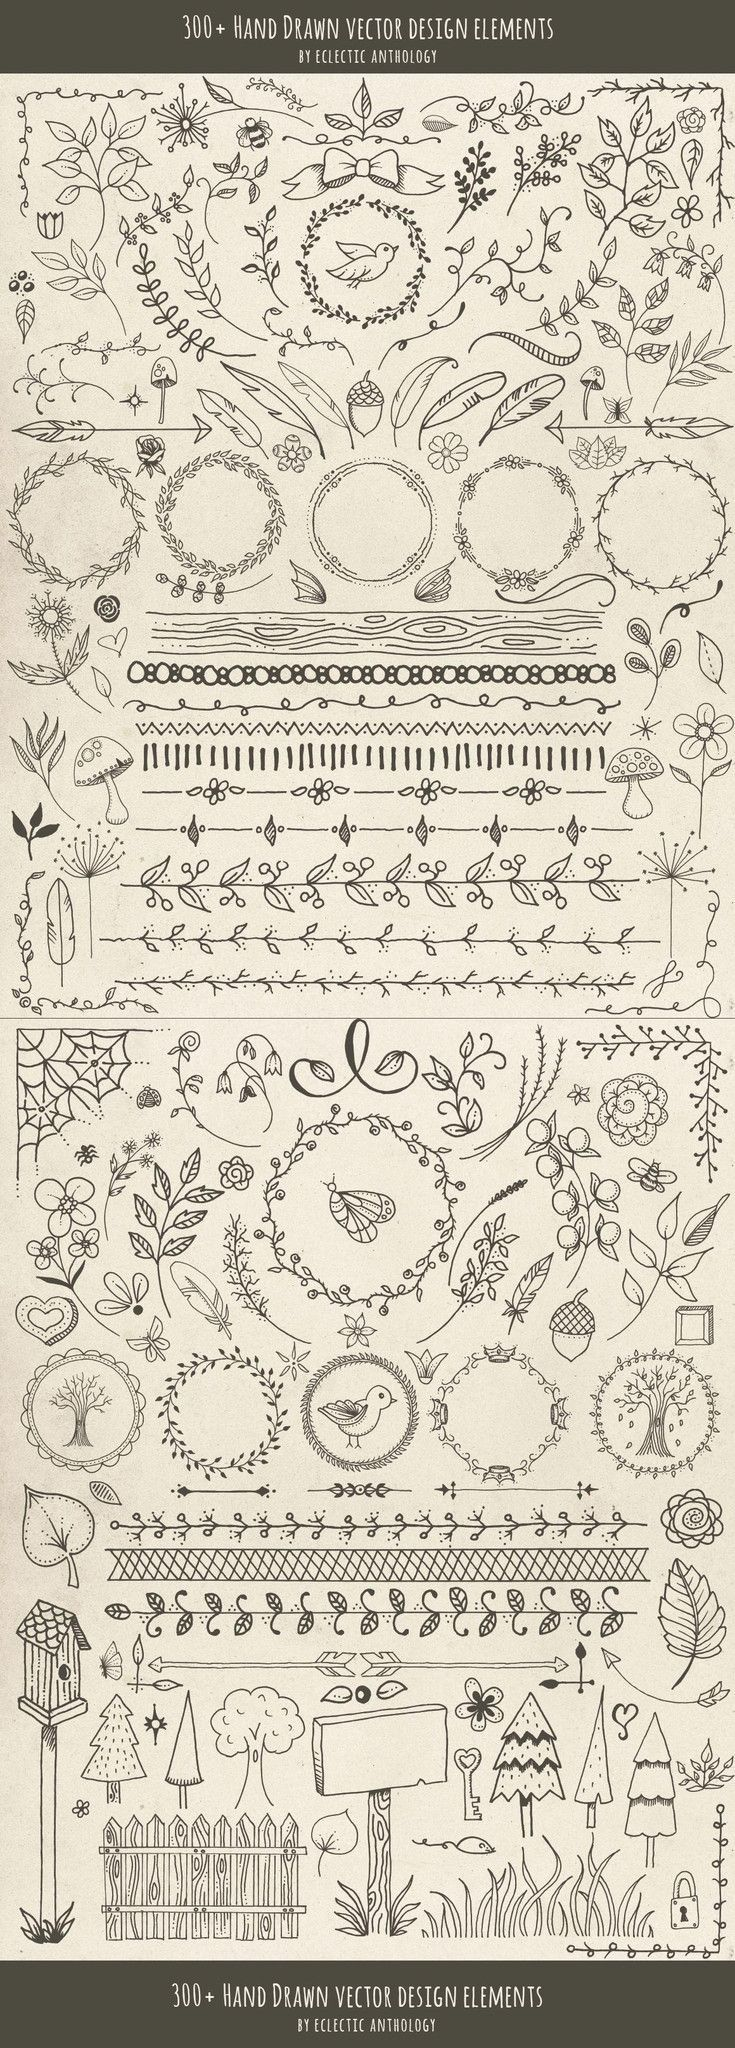 "Over 300 ""Woodland Whimsy"" Hand Drawn Vector Design Elements! Flourishes, curls,"